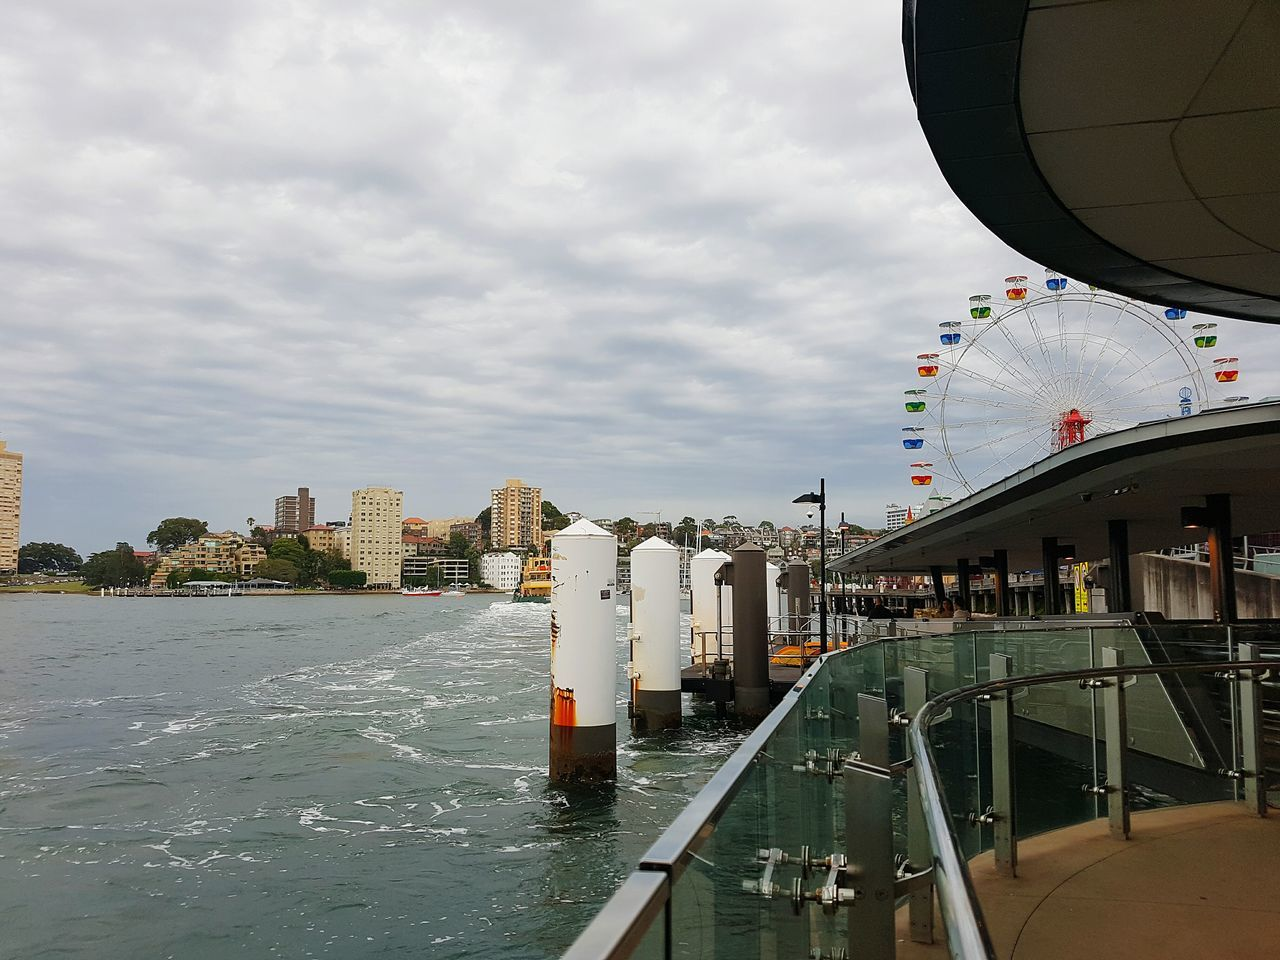 Waiting for Ferry Architecture Cloud - Sky City Building Exterior Outdoors Urban Skyline Water Built Structure Bridge - Man Made Structure No People Day Coming Home For Christmas Traveling Home For The Holidays Mobilephotography Samsung Galaxy S7 Luna Park Sydney Sydney, Australia Ferris Wheel